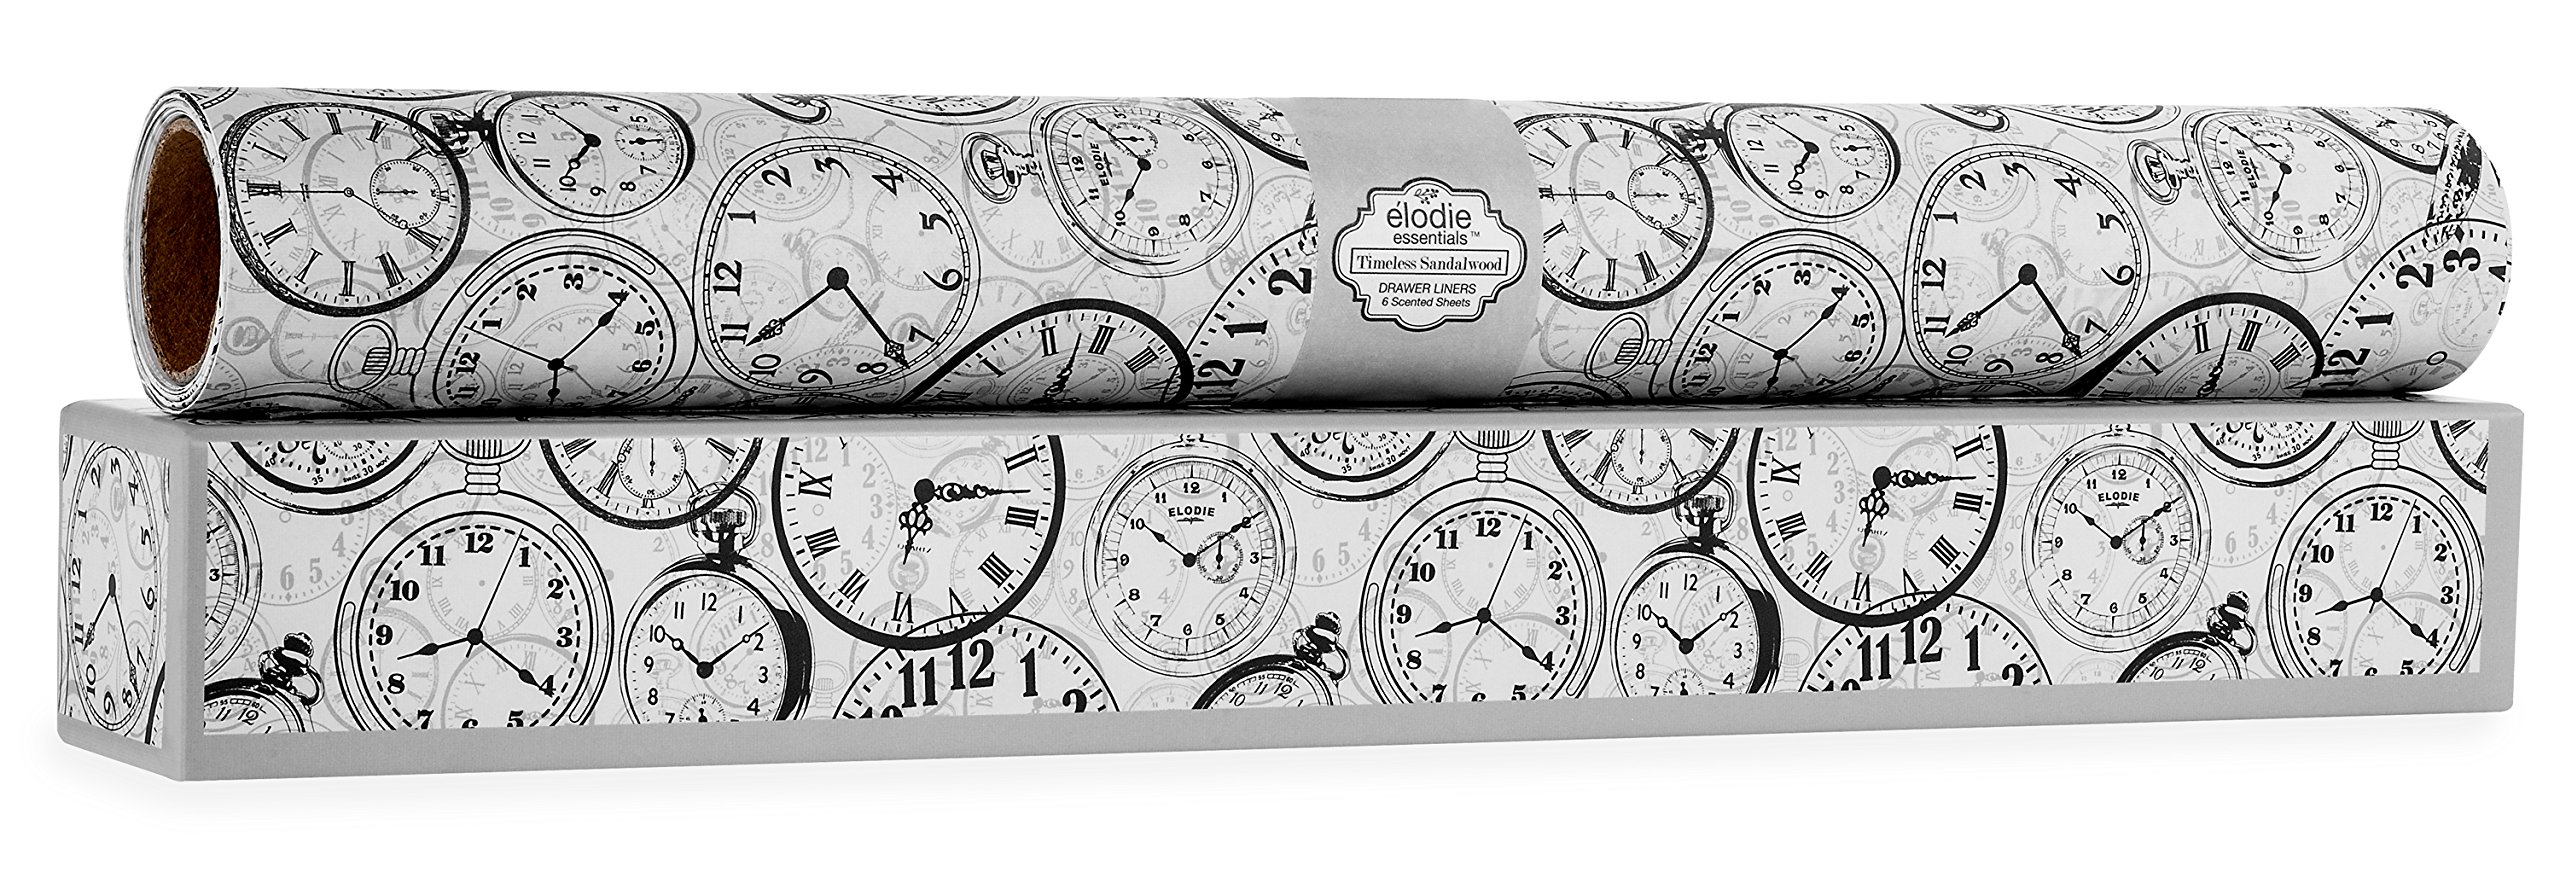 Timeless Sandalwood Scented Drawer Liners - Pocket-Watch Vintage Charm by Elodie Essentials